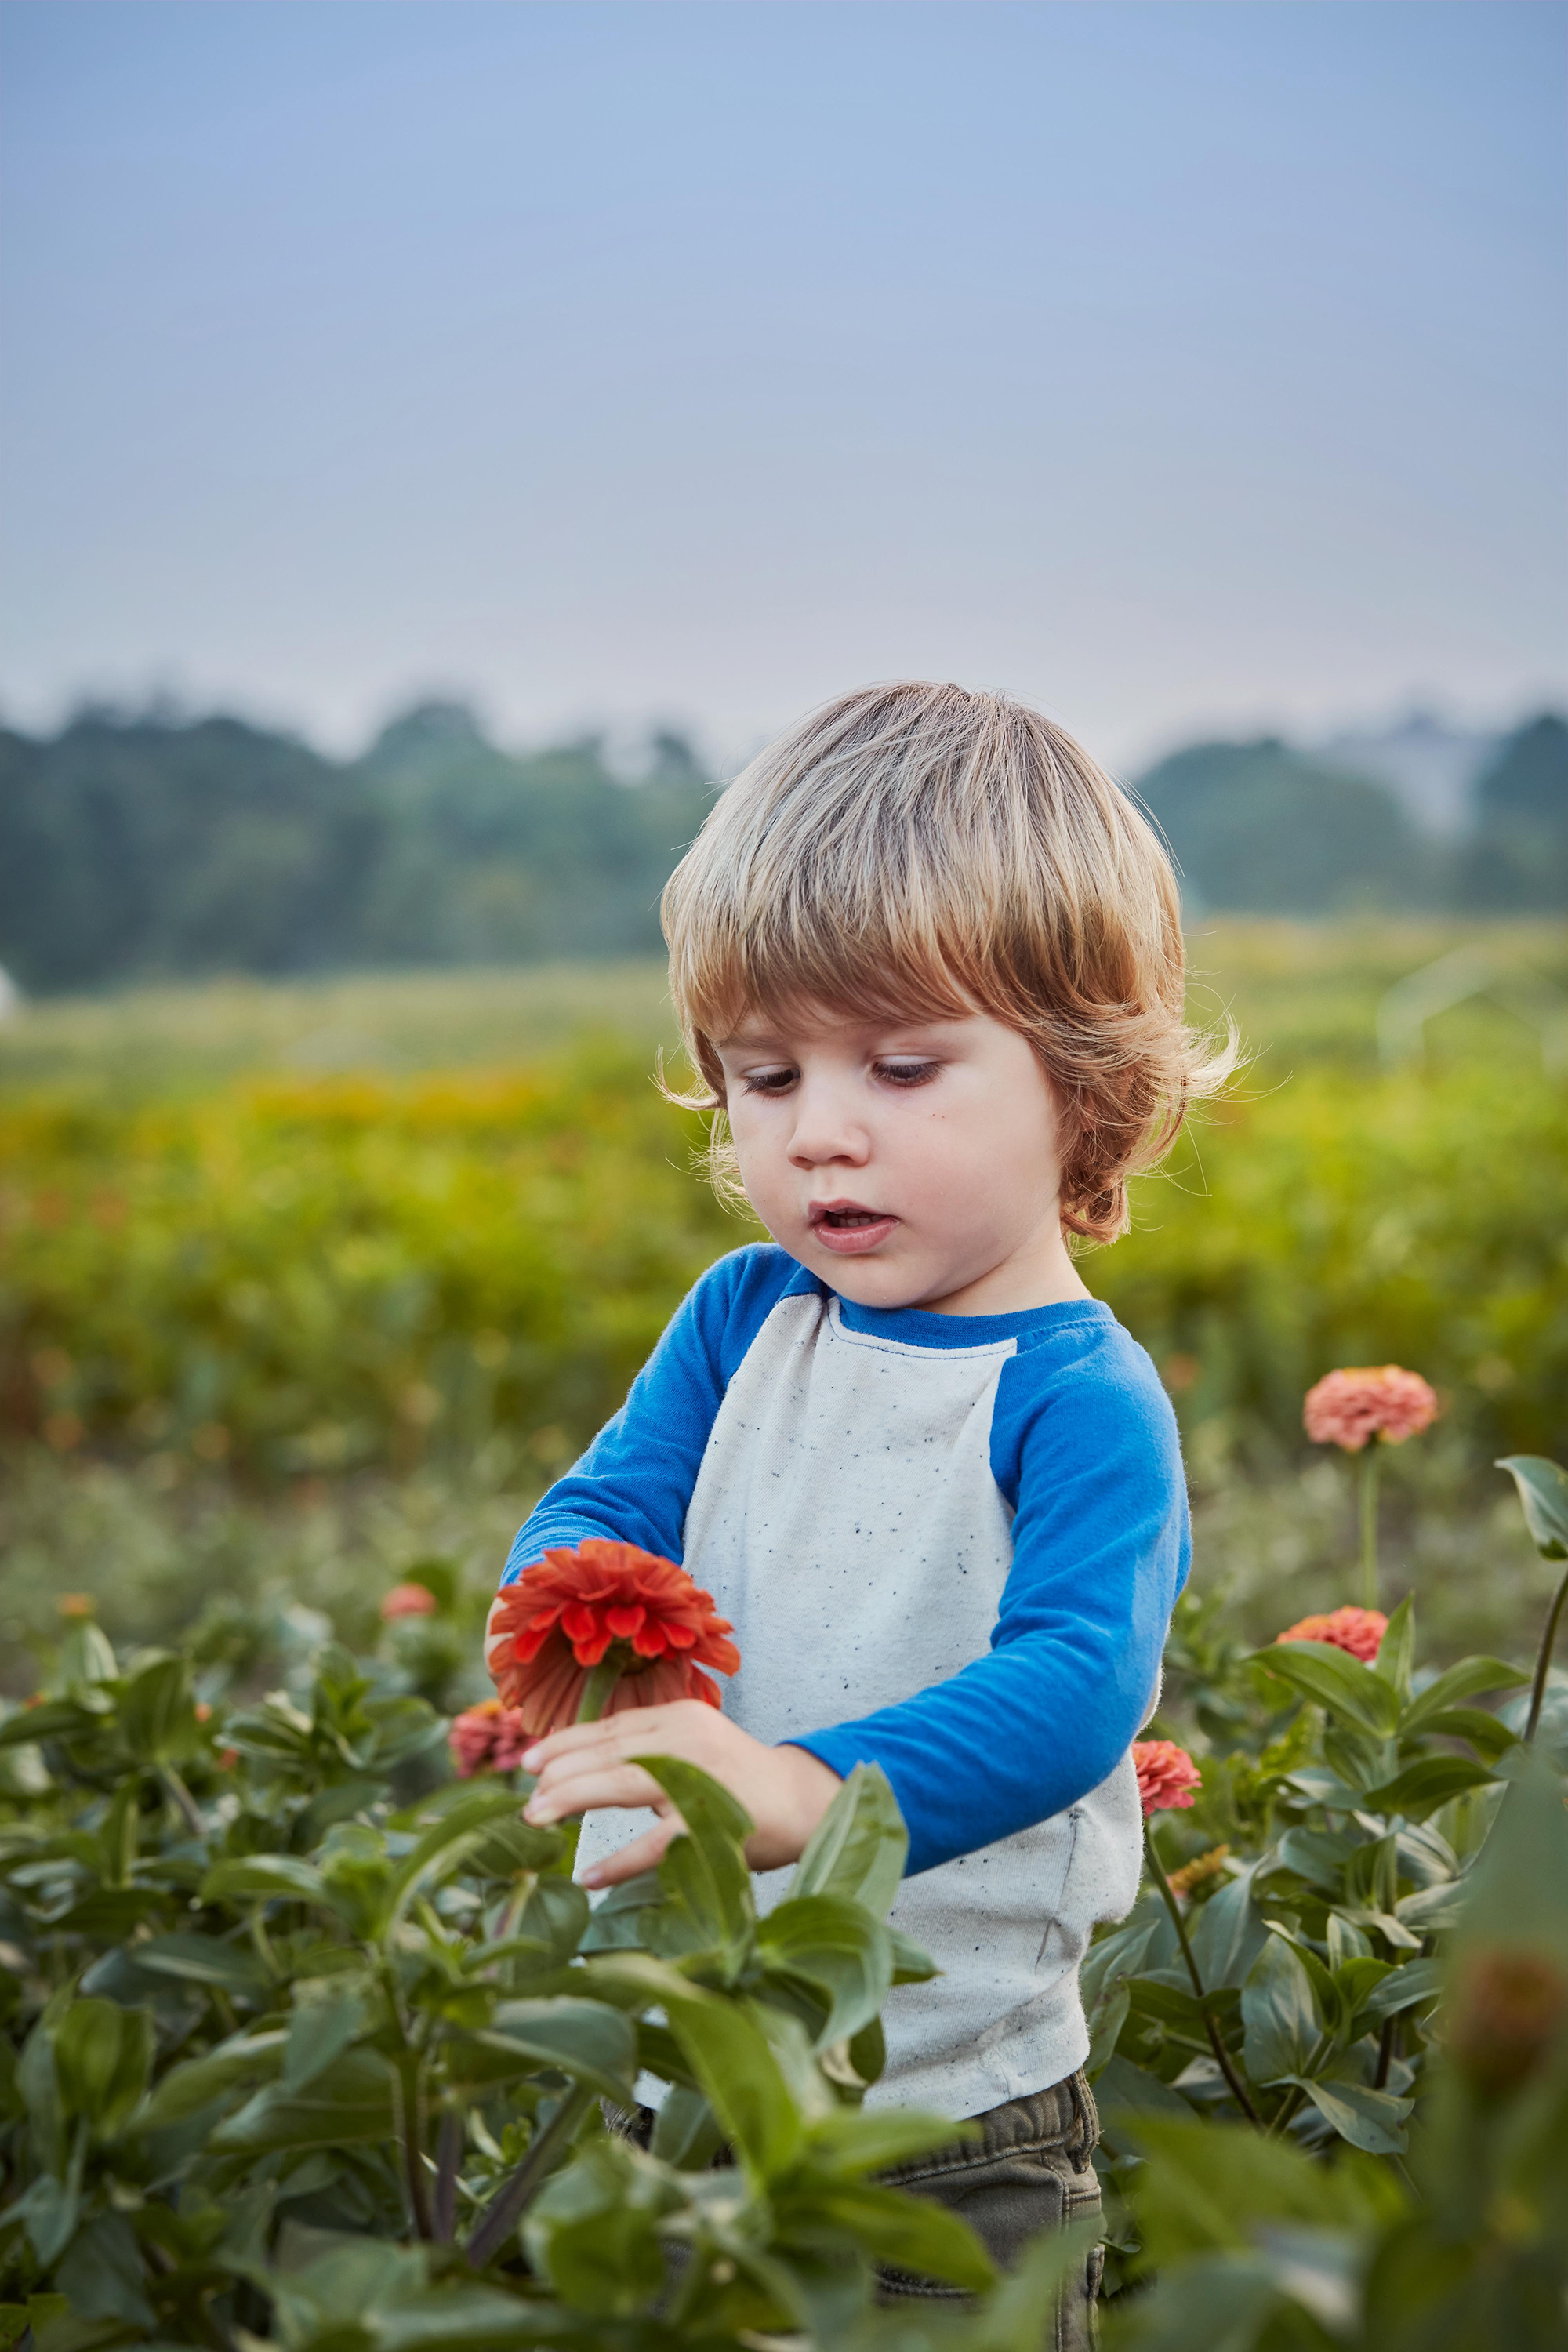 little boy playing with flowers in a field